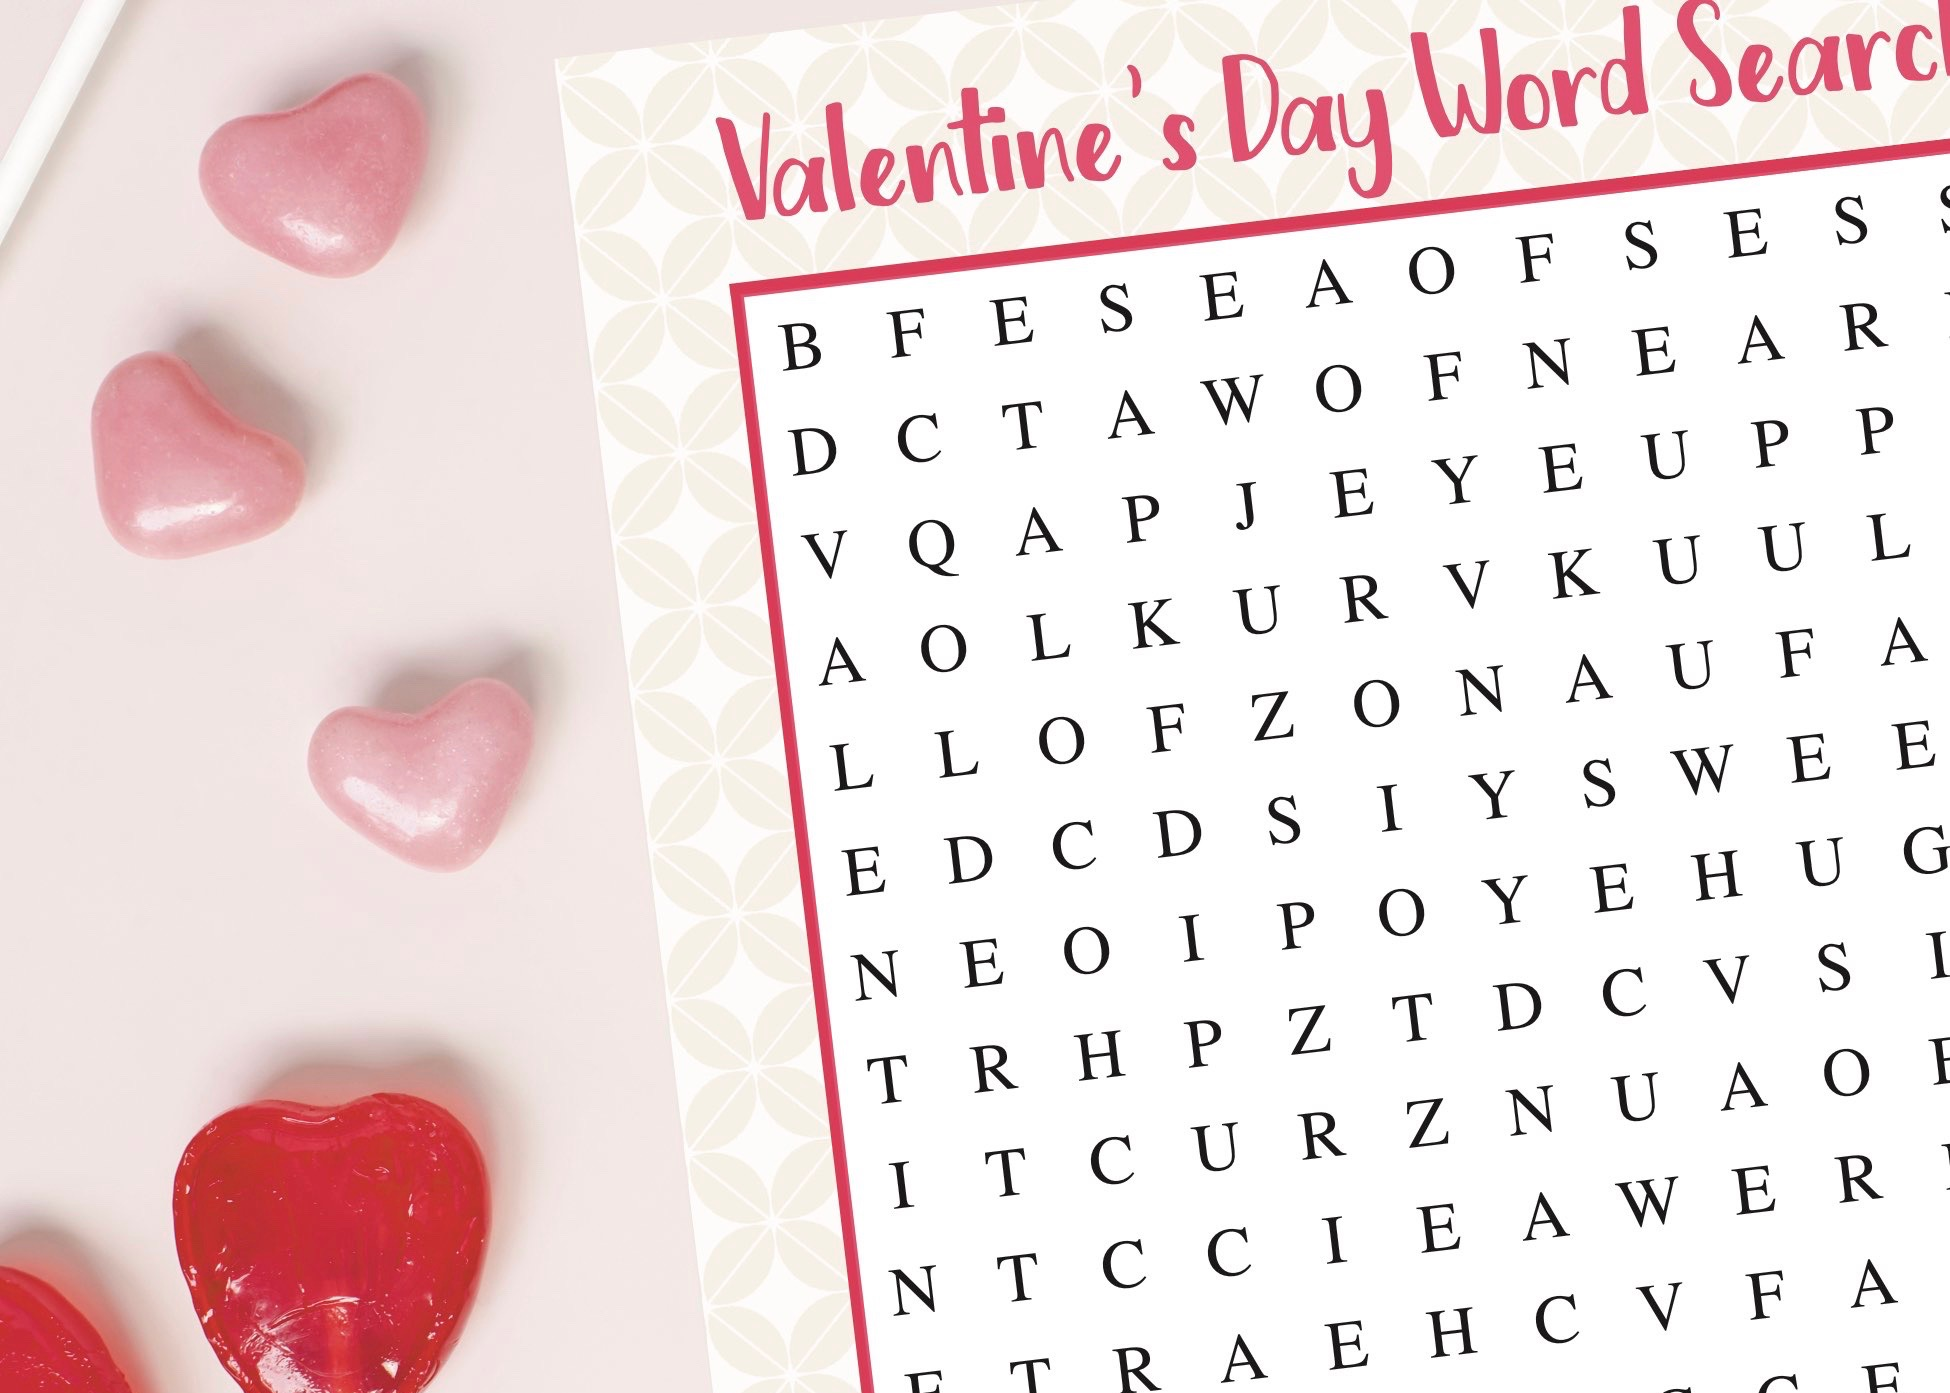 photo relating to Valentine's Day Word Search Printable called Valentines Working day Phrase Glimpse Printable - Daily Celebration Journal